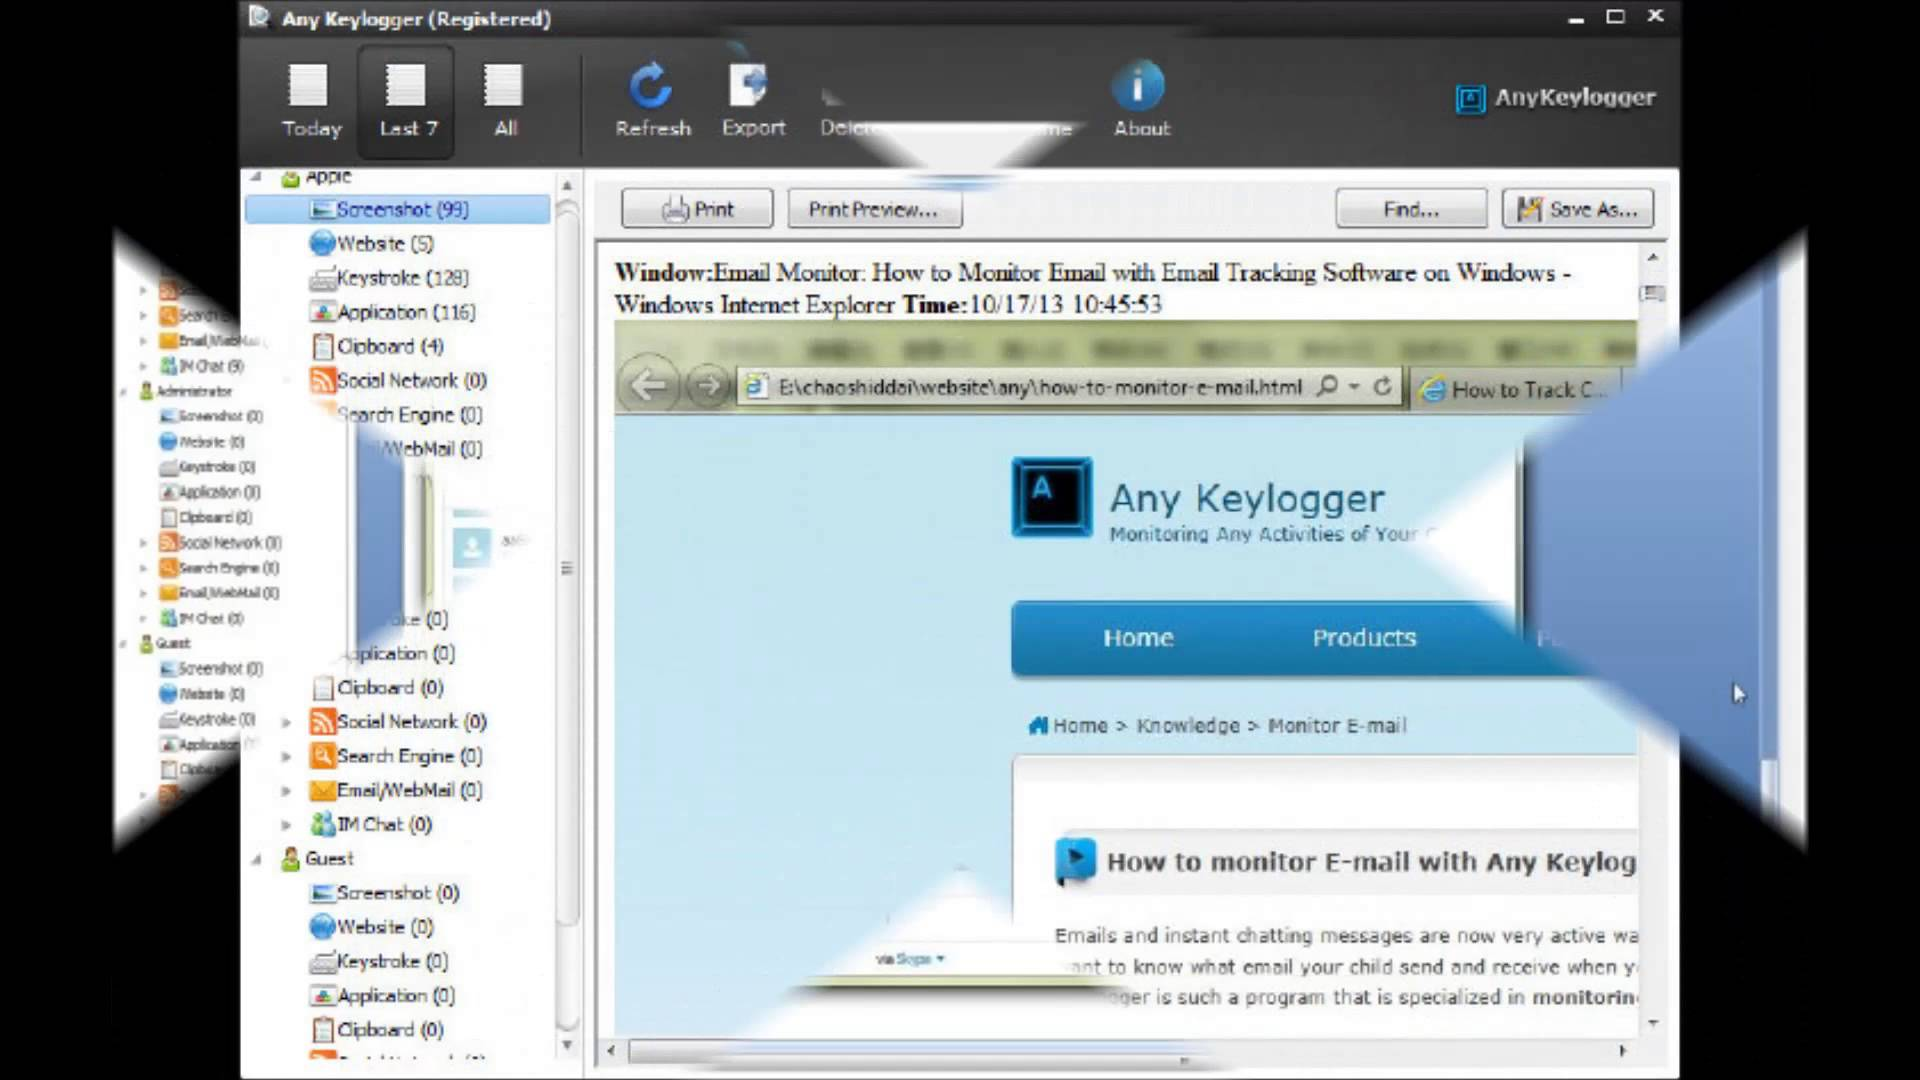 Track Any Activities on PC by Computer Tracking Software...